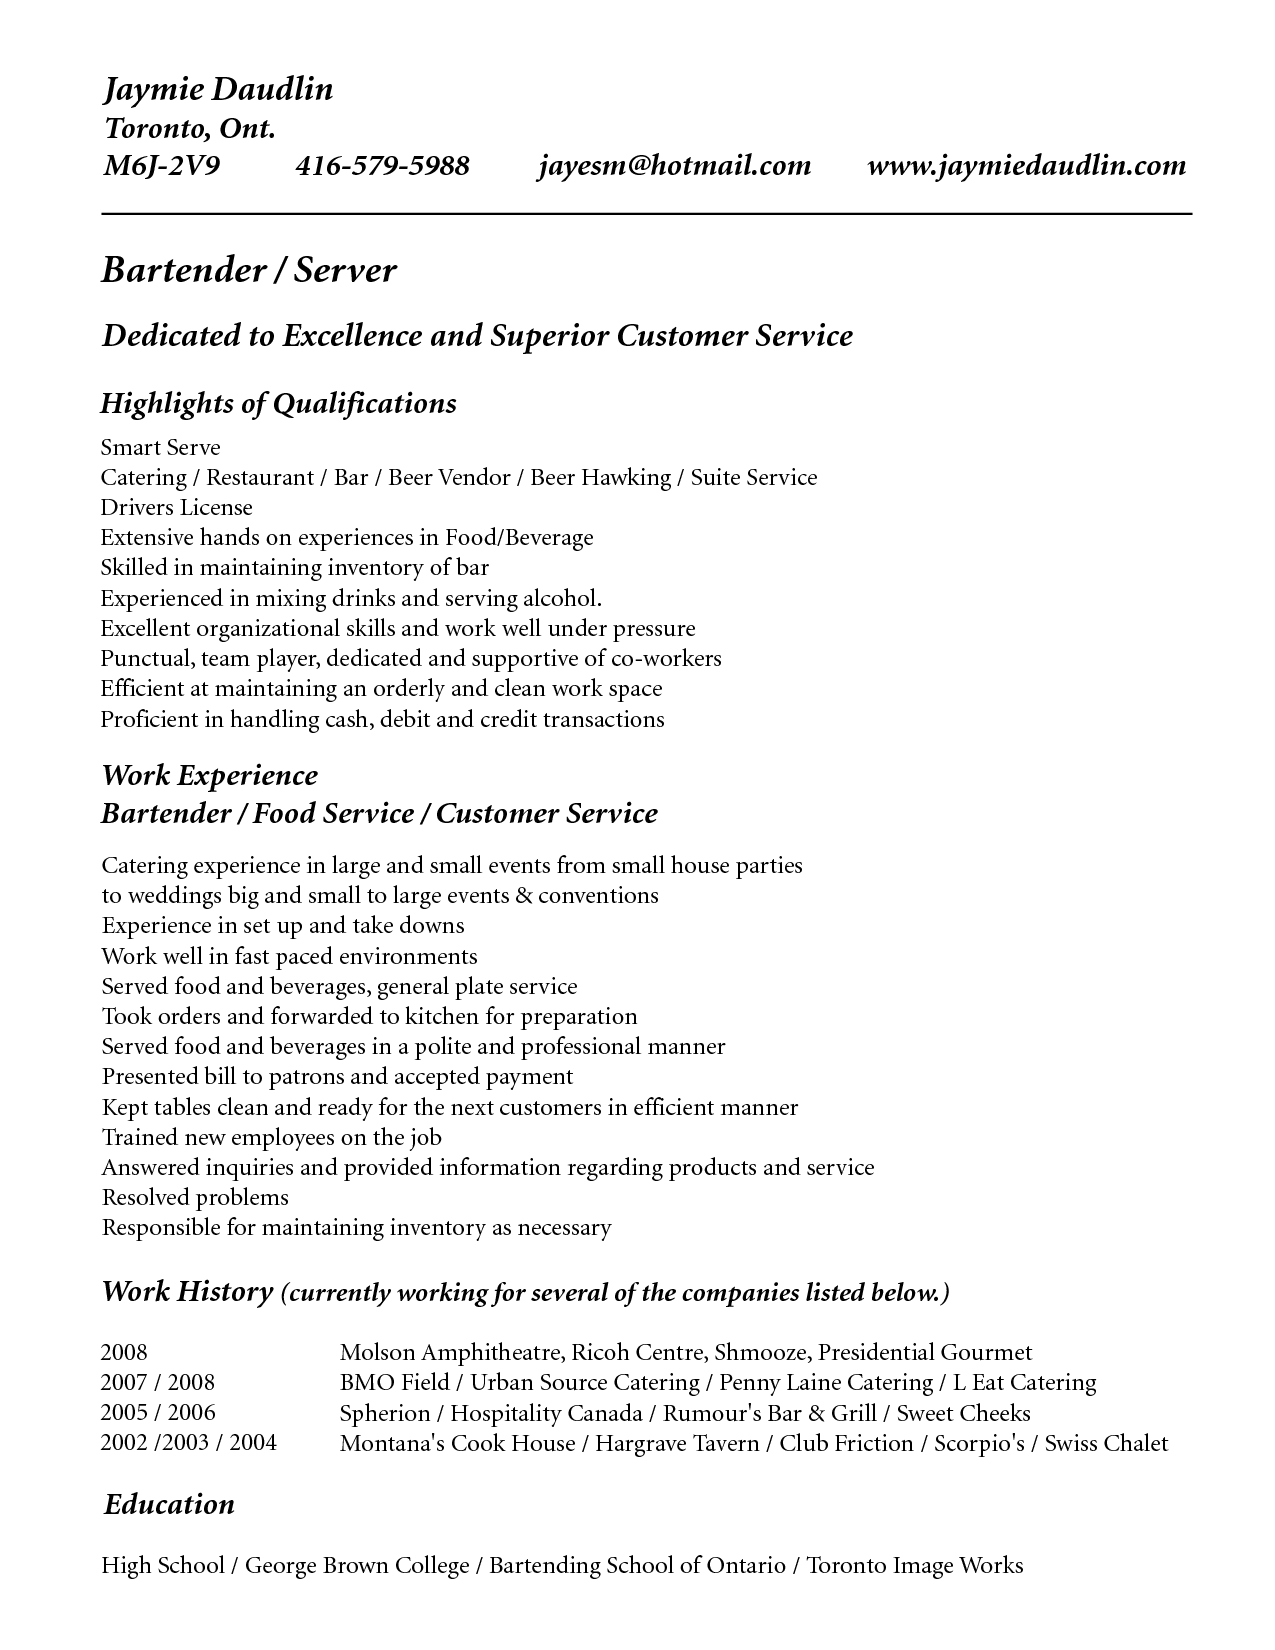 Resume template for bartender no experience httpwww resume template for bartender no experience httpresumecareerfo yelopaper Image collections